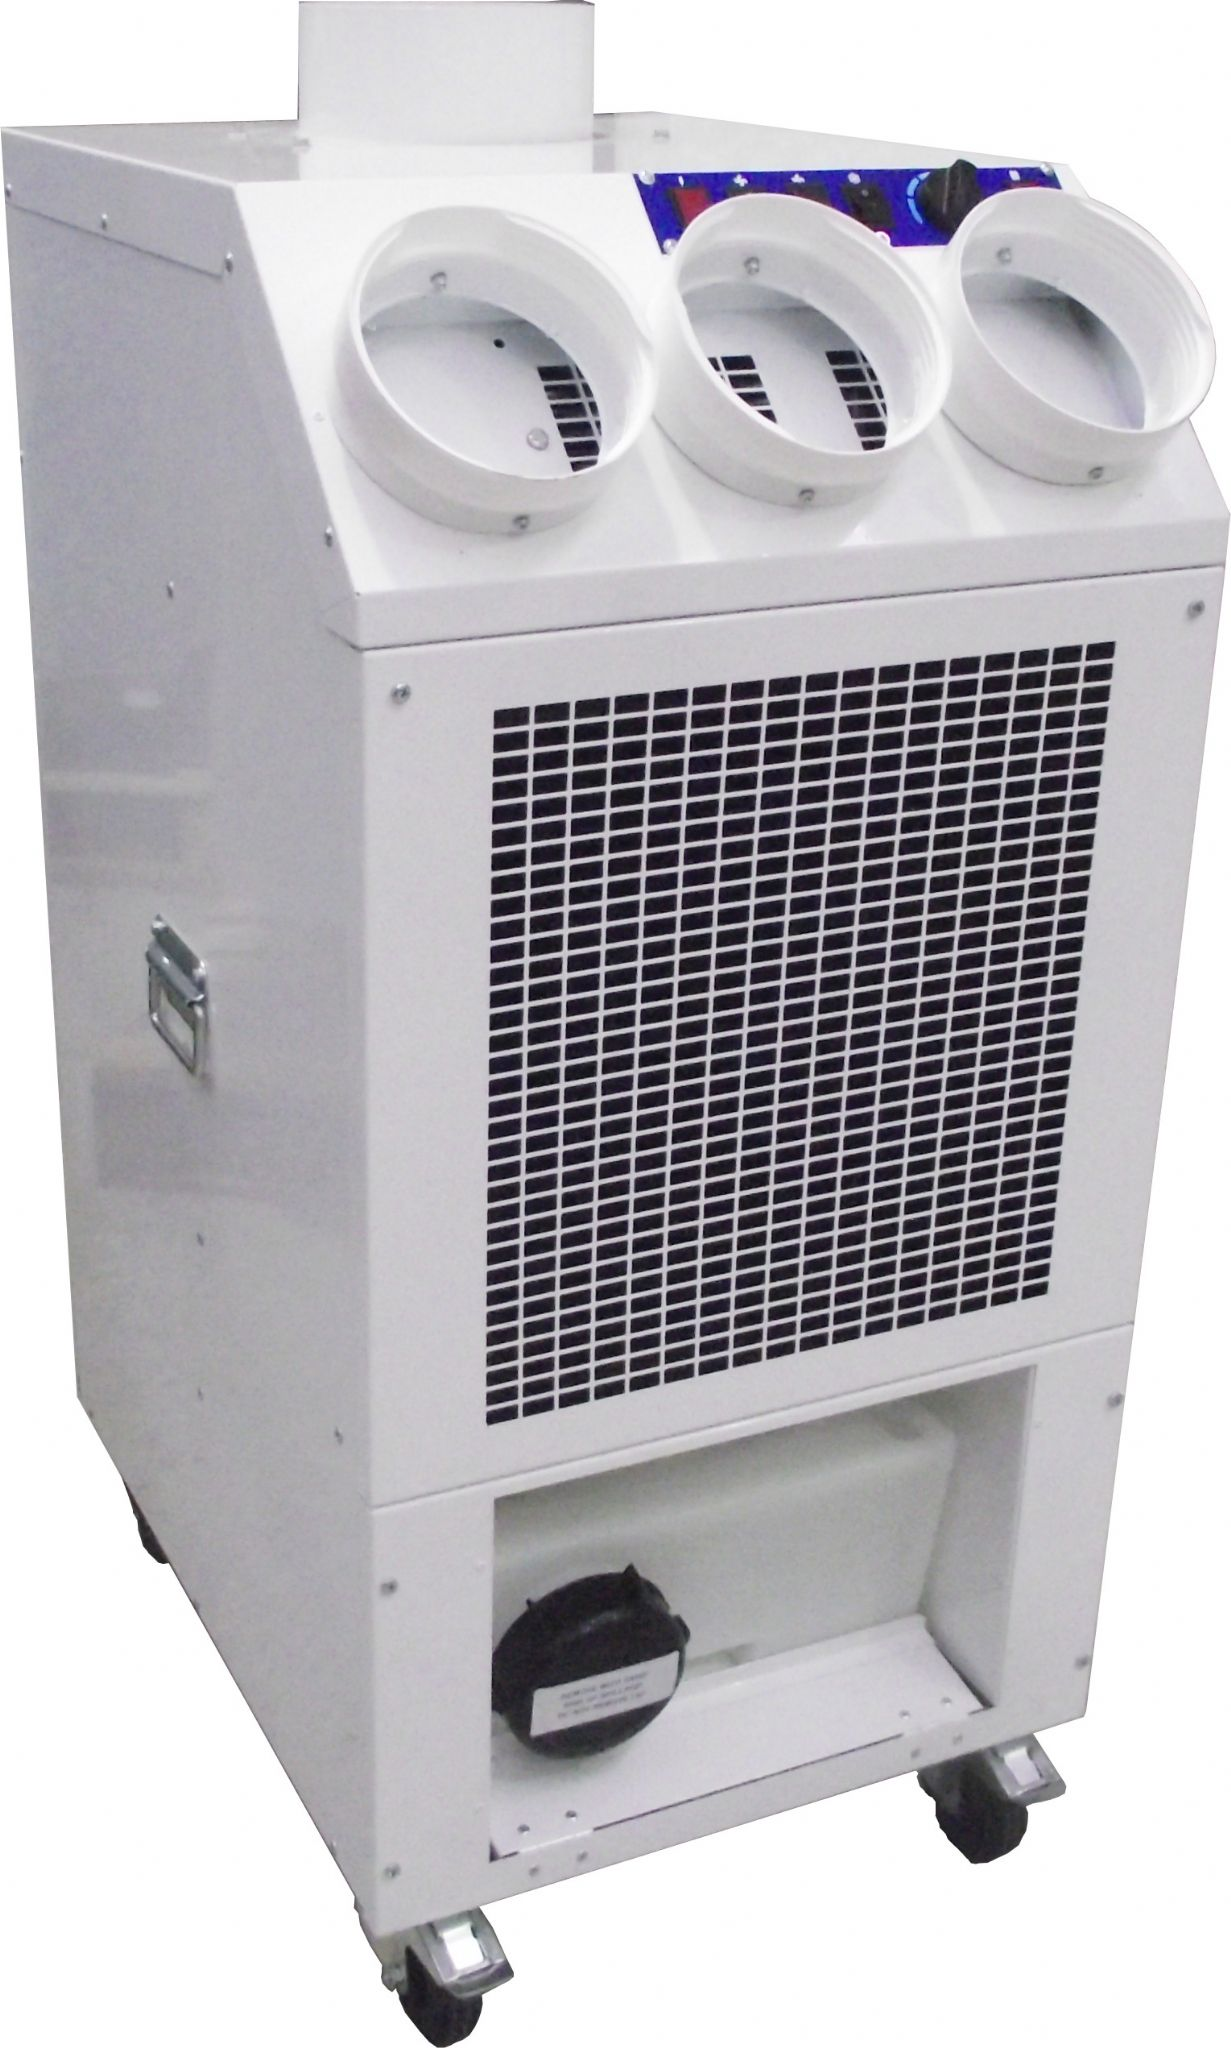 Mcm280pd Industrial Portable Air Conditioning 8 Kw Power Duct